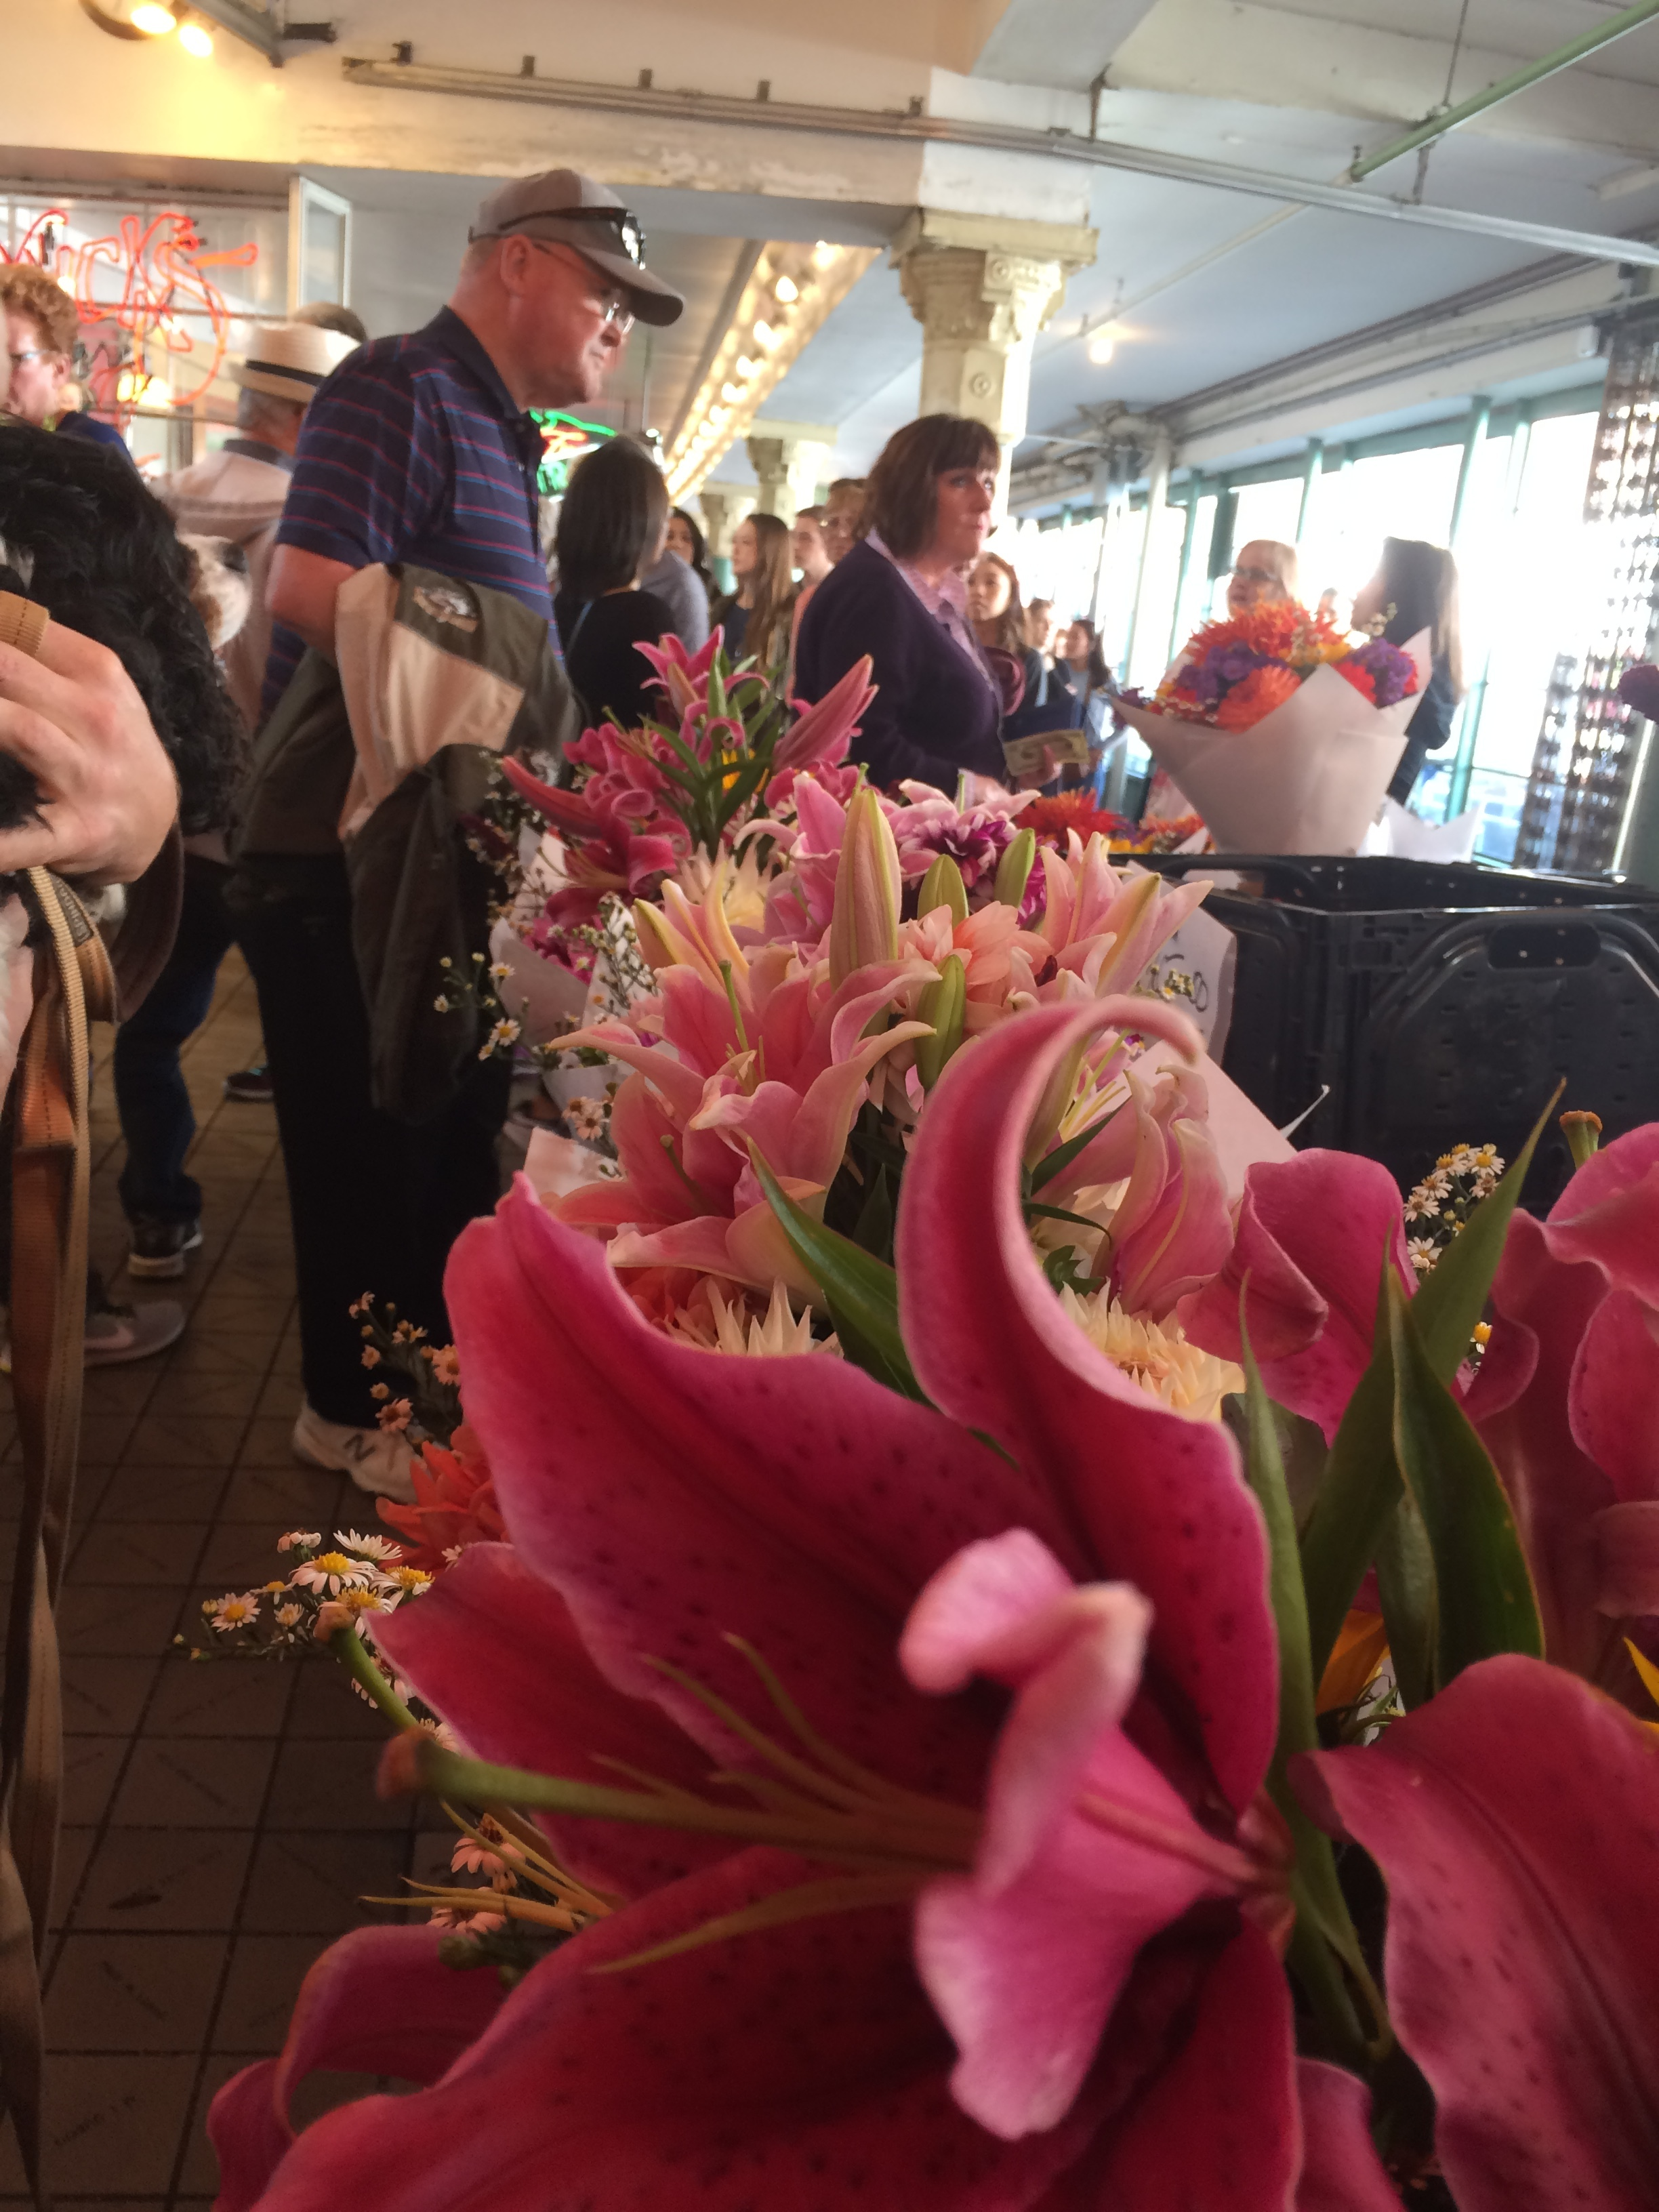 Pike Place in Seattle. I enjoyed the rows and rows of flowers more than the fish.